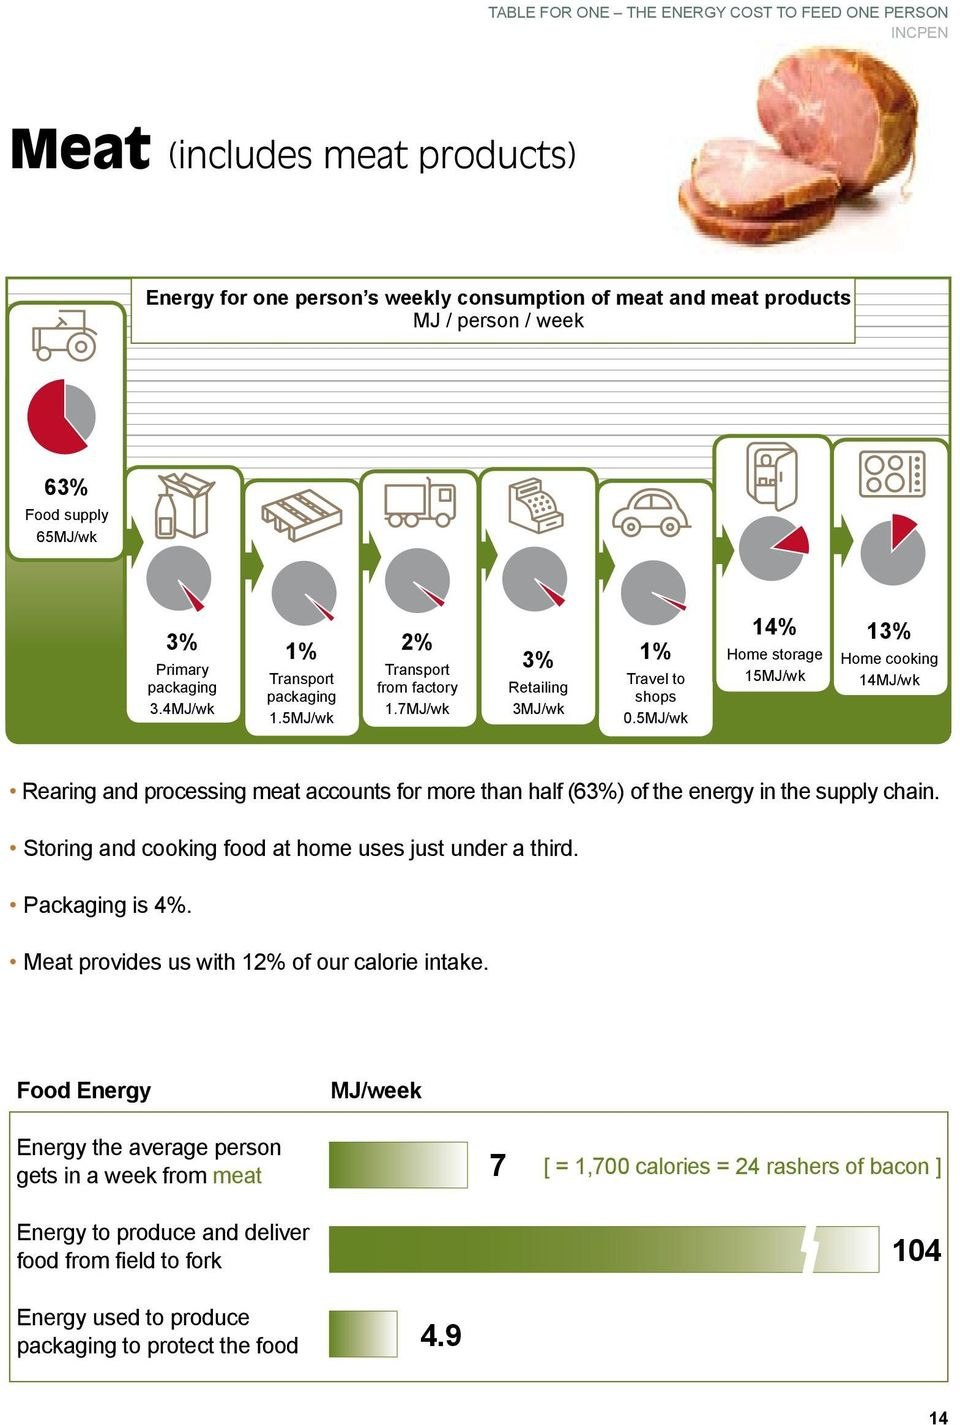 5MJ/wk 14% 15MJ/wk 1 14MJ/wk Rearing and processing meat accounts for more than half (6) of the energy in the supply chain.